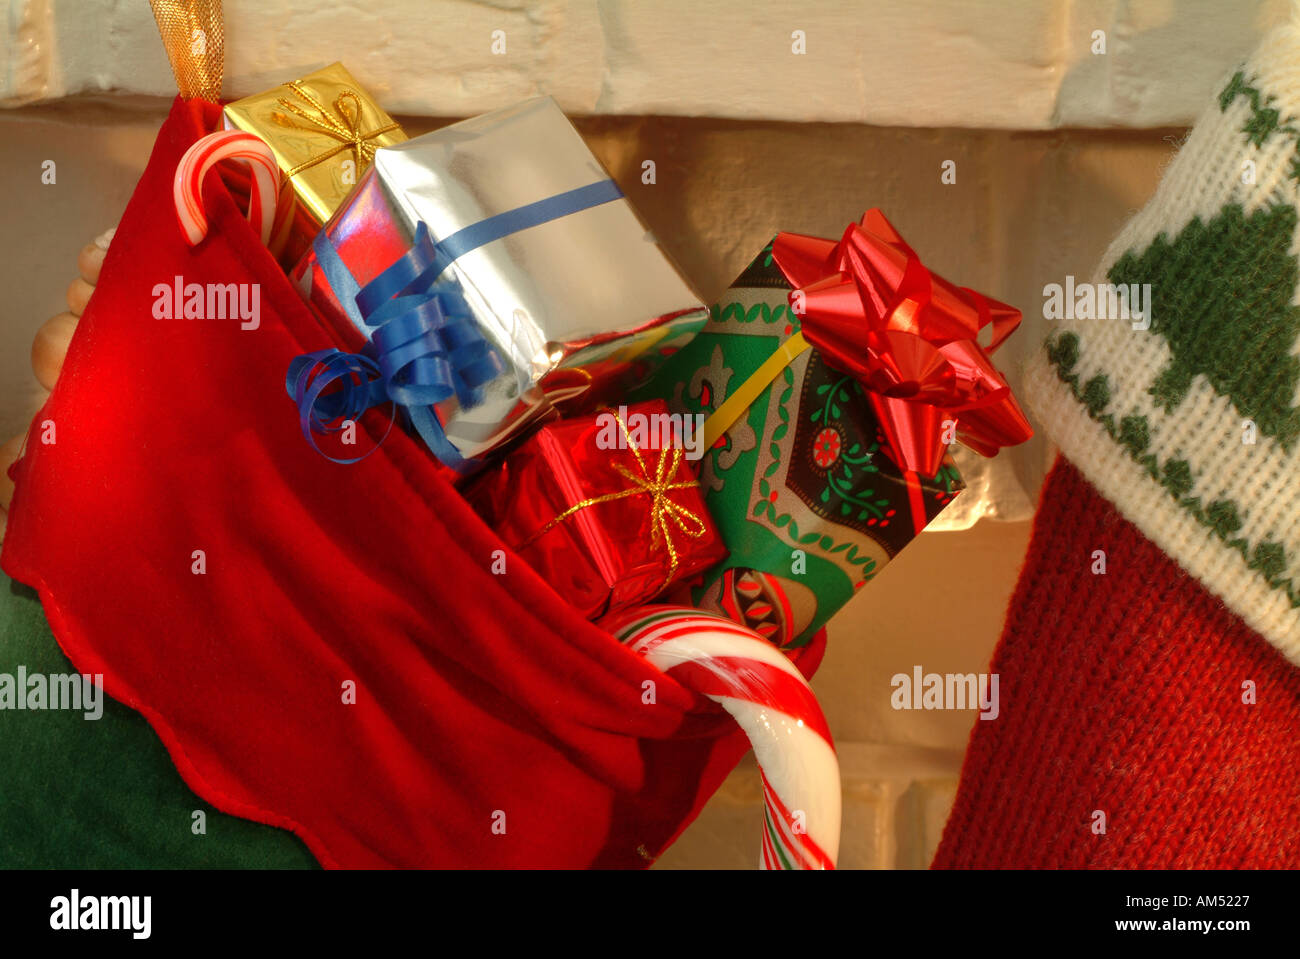 christmas stockings full of gifts pinned to a fireplace mantle at